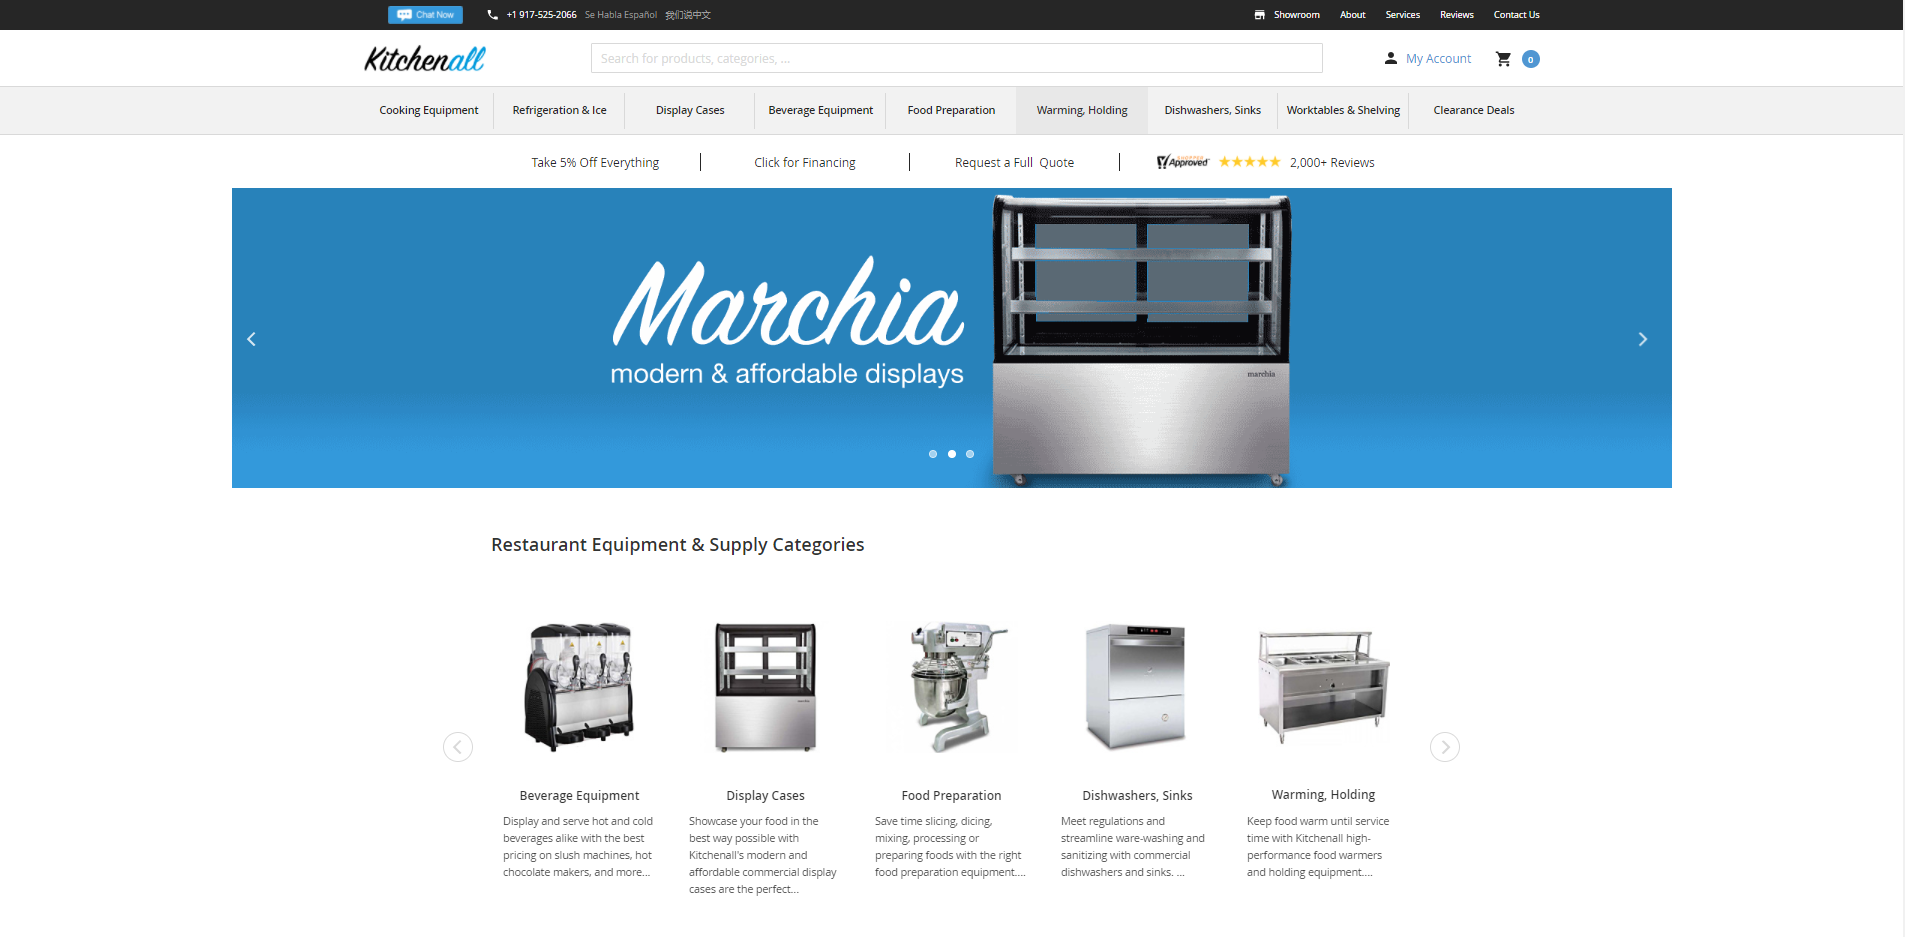 kitchenall portfolio website